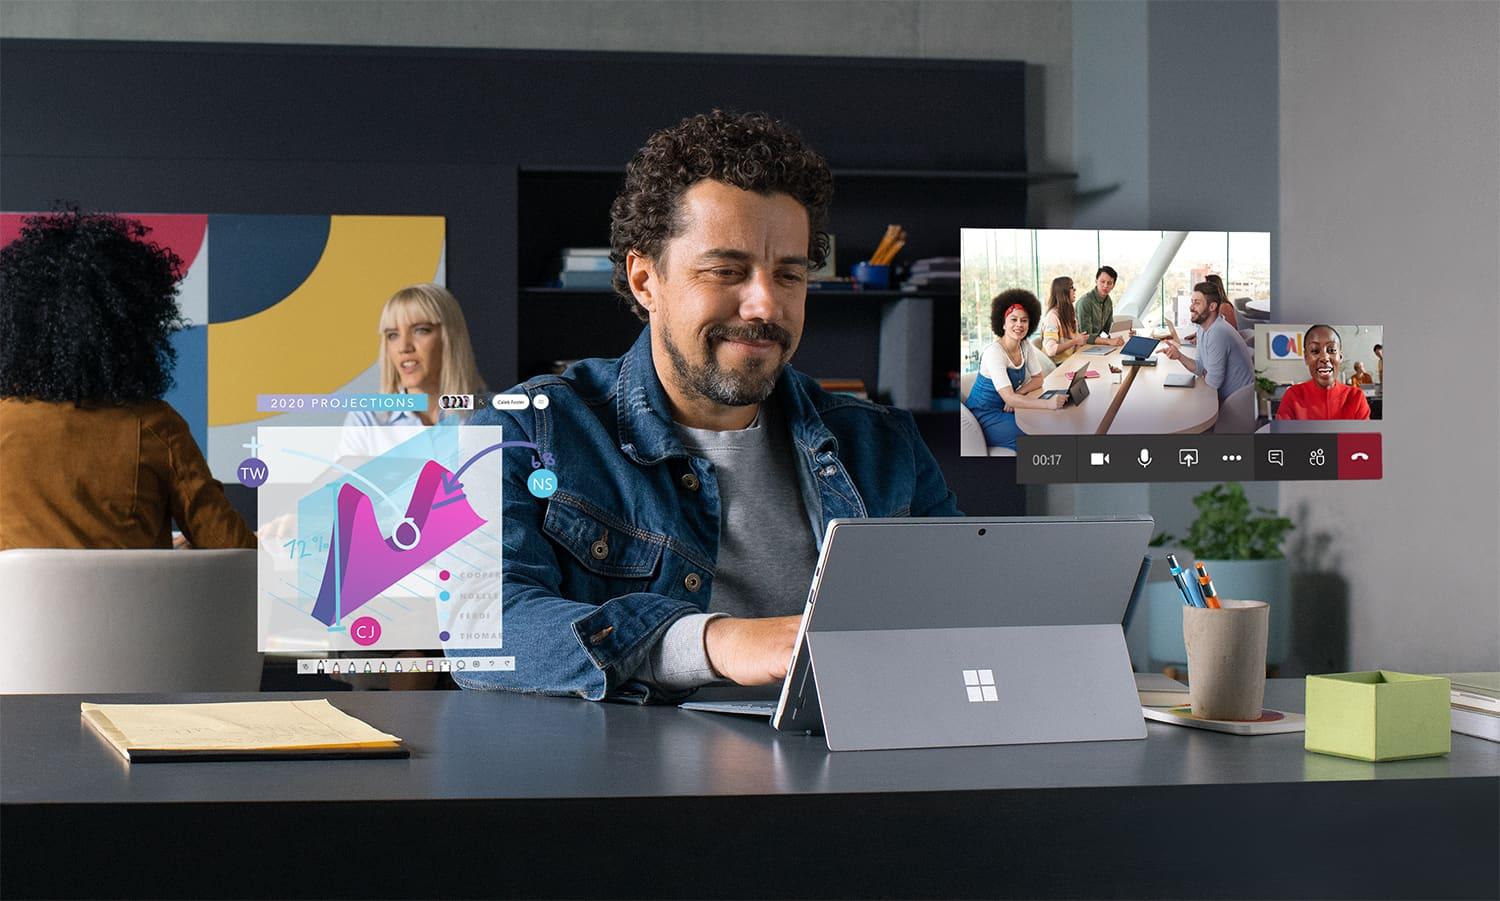 Microsoft is bringing out the big guns against Slack with new global ad campaign for Teams